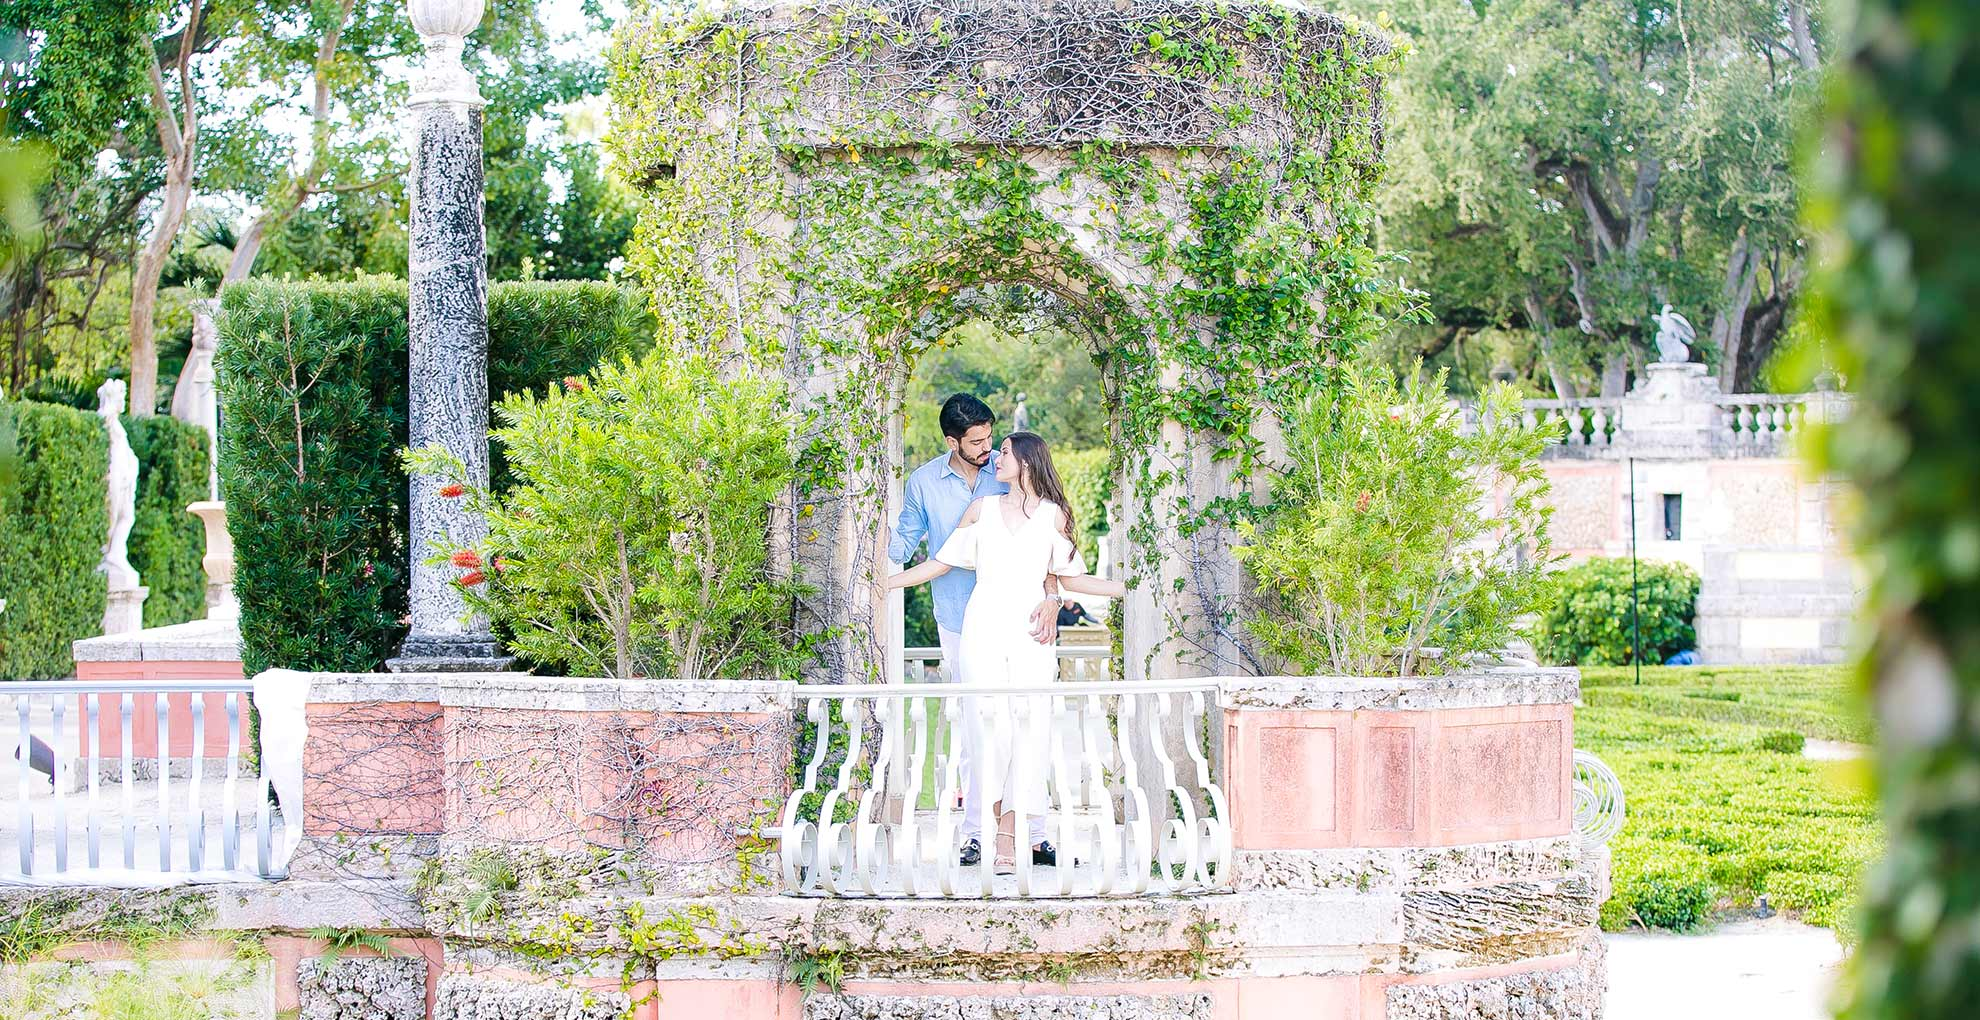 romantic engagement photoshoot at vizcaya museum and gardens, miami